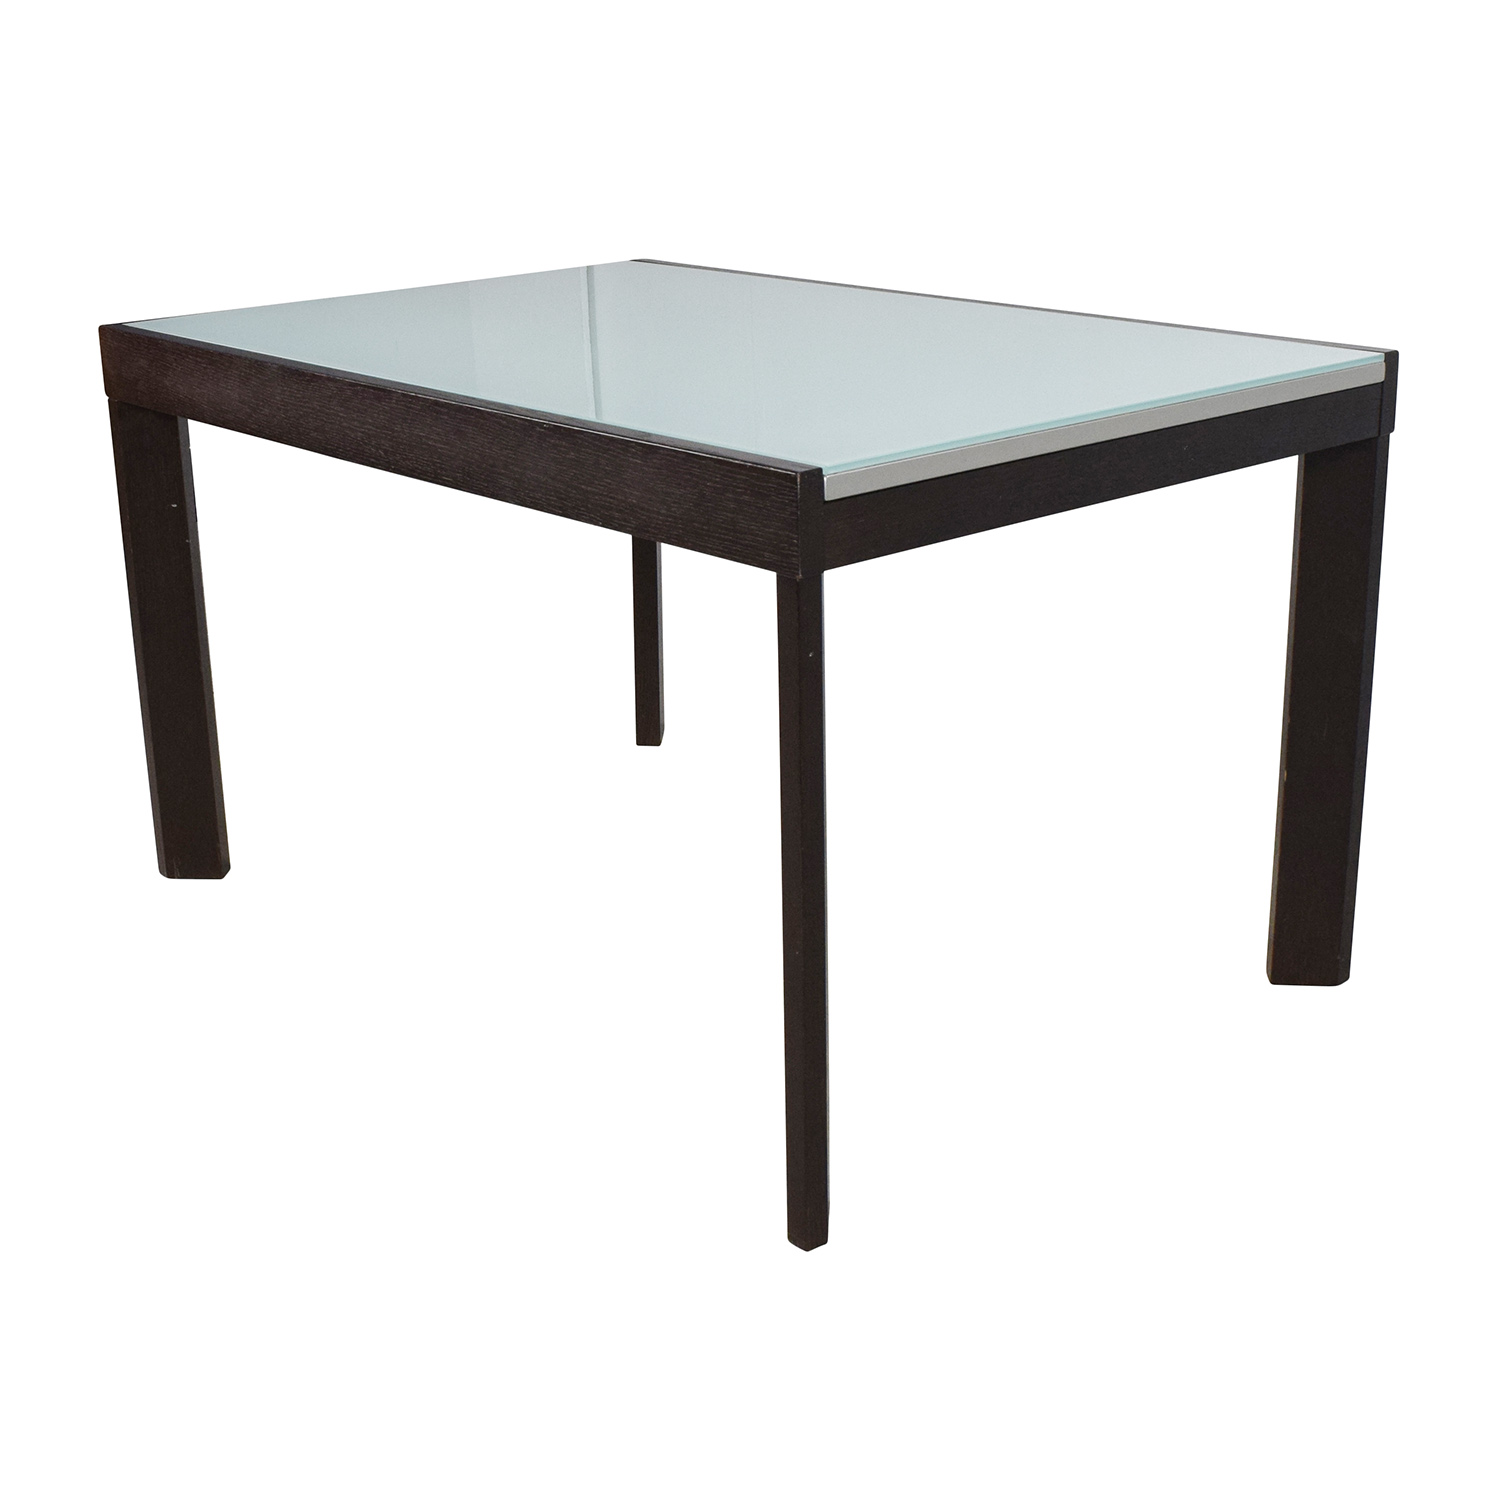 Chaise Calligaris 75 Off Calligaris Calligaris Extendable Glass Dining Table Tables